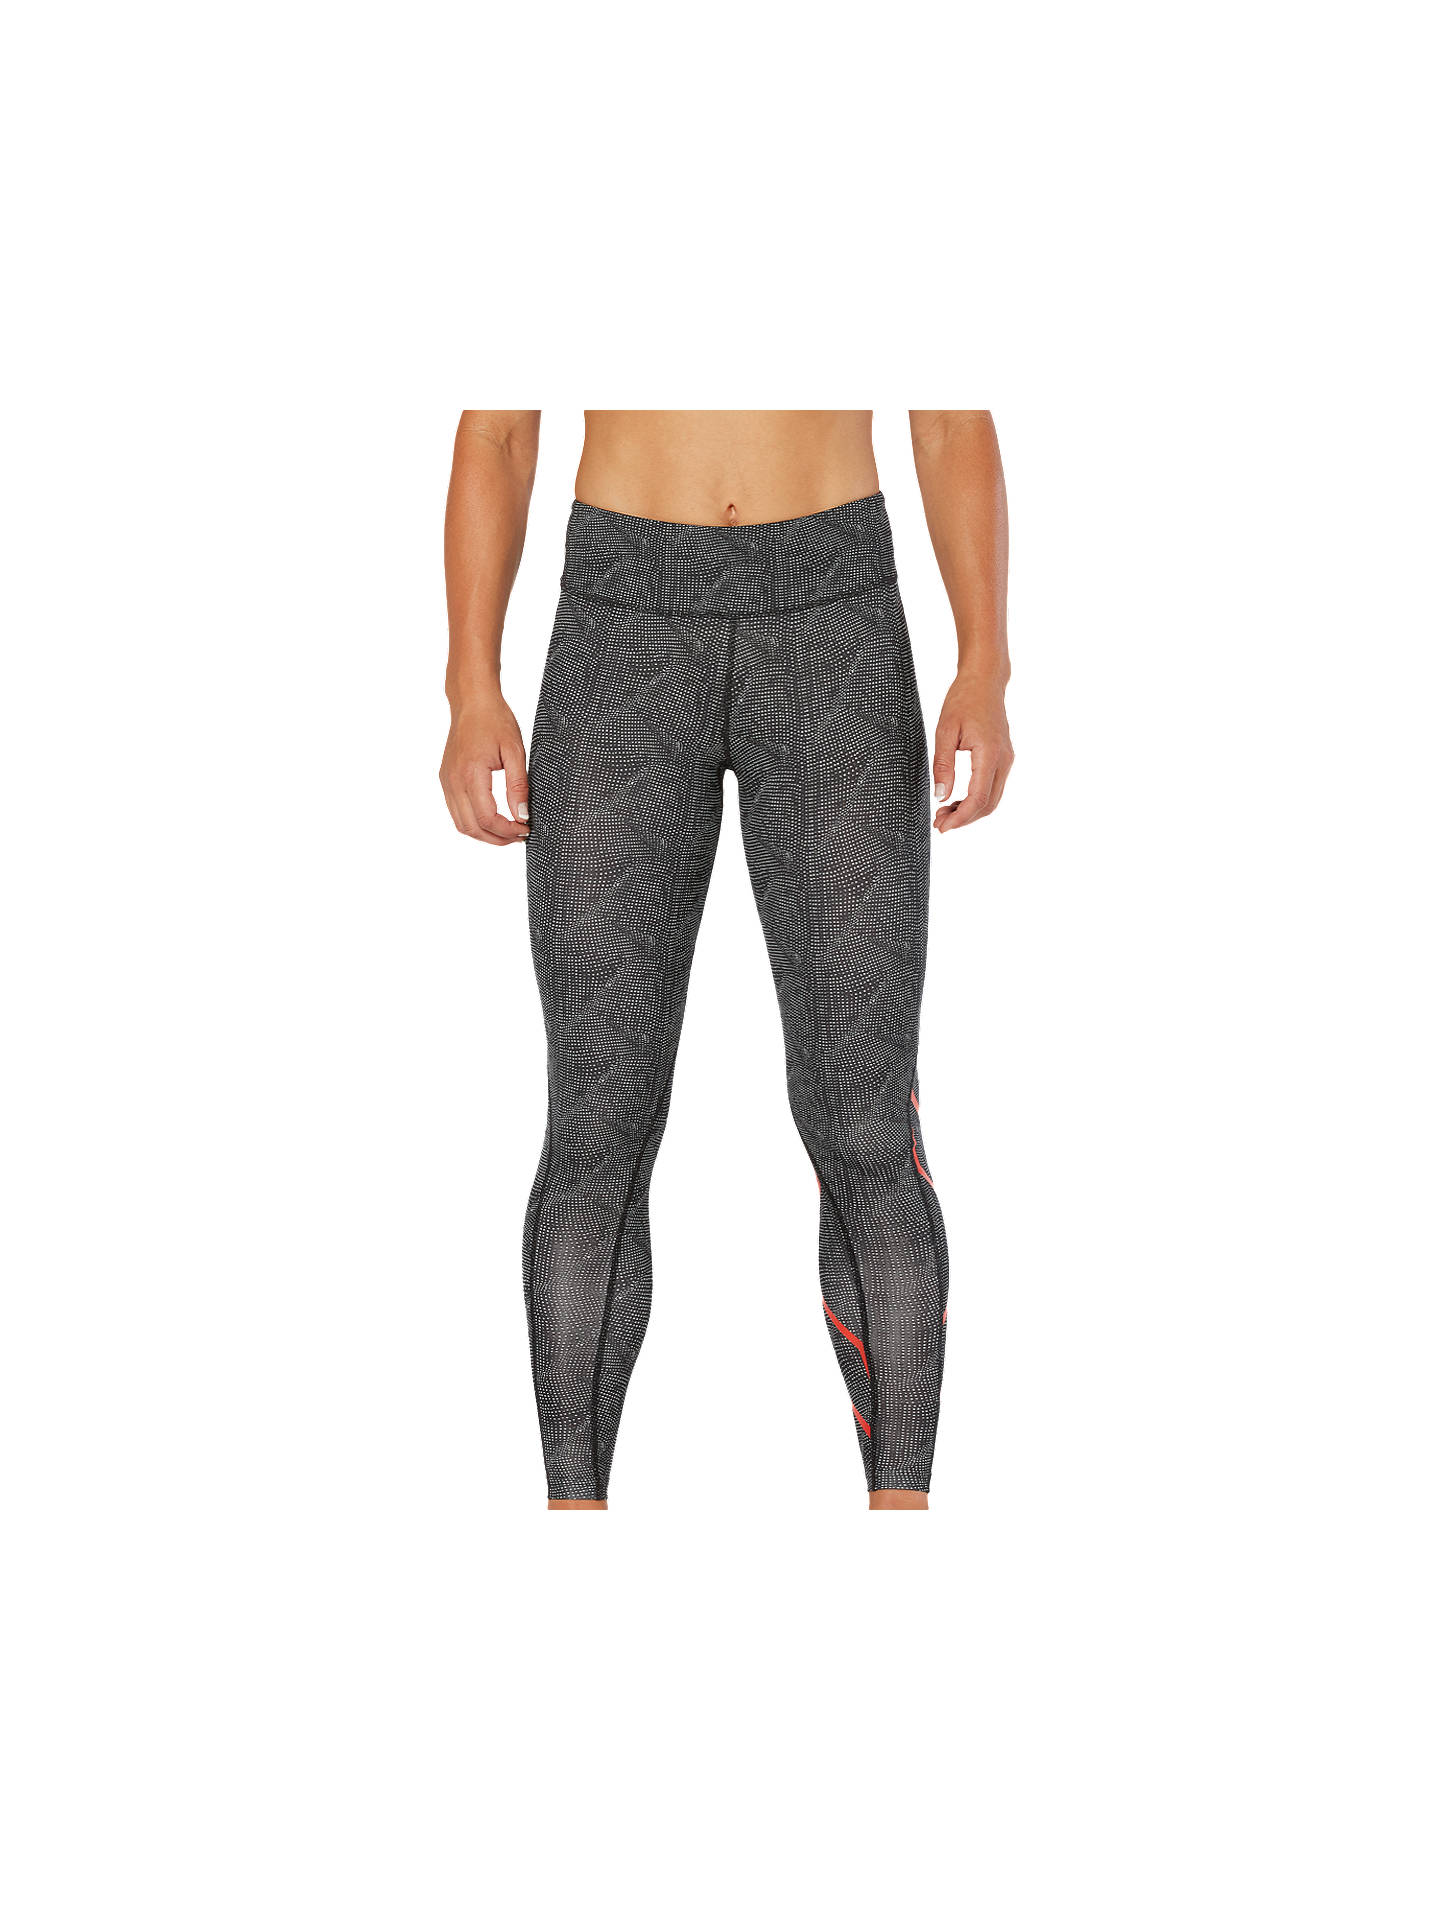 b5b559fbd5 Buy 2XU Mid-Rise Print Compression Women's Tights, Grey, XS Online at  johnlewis ...